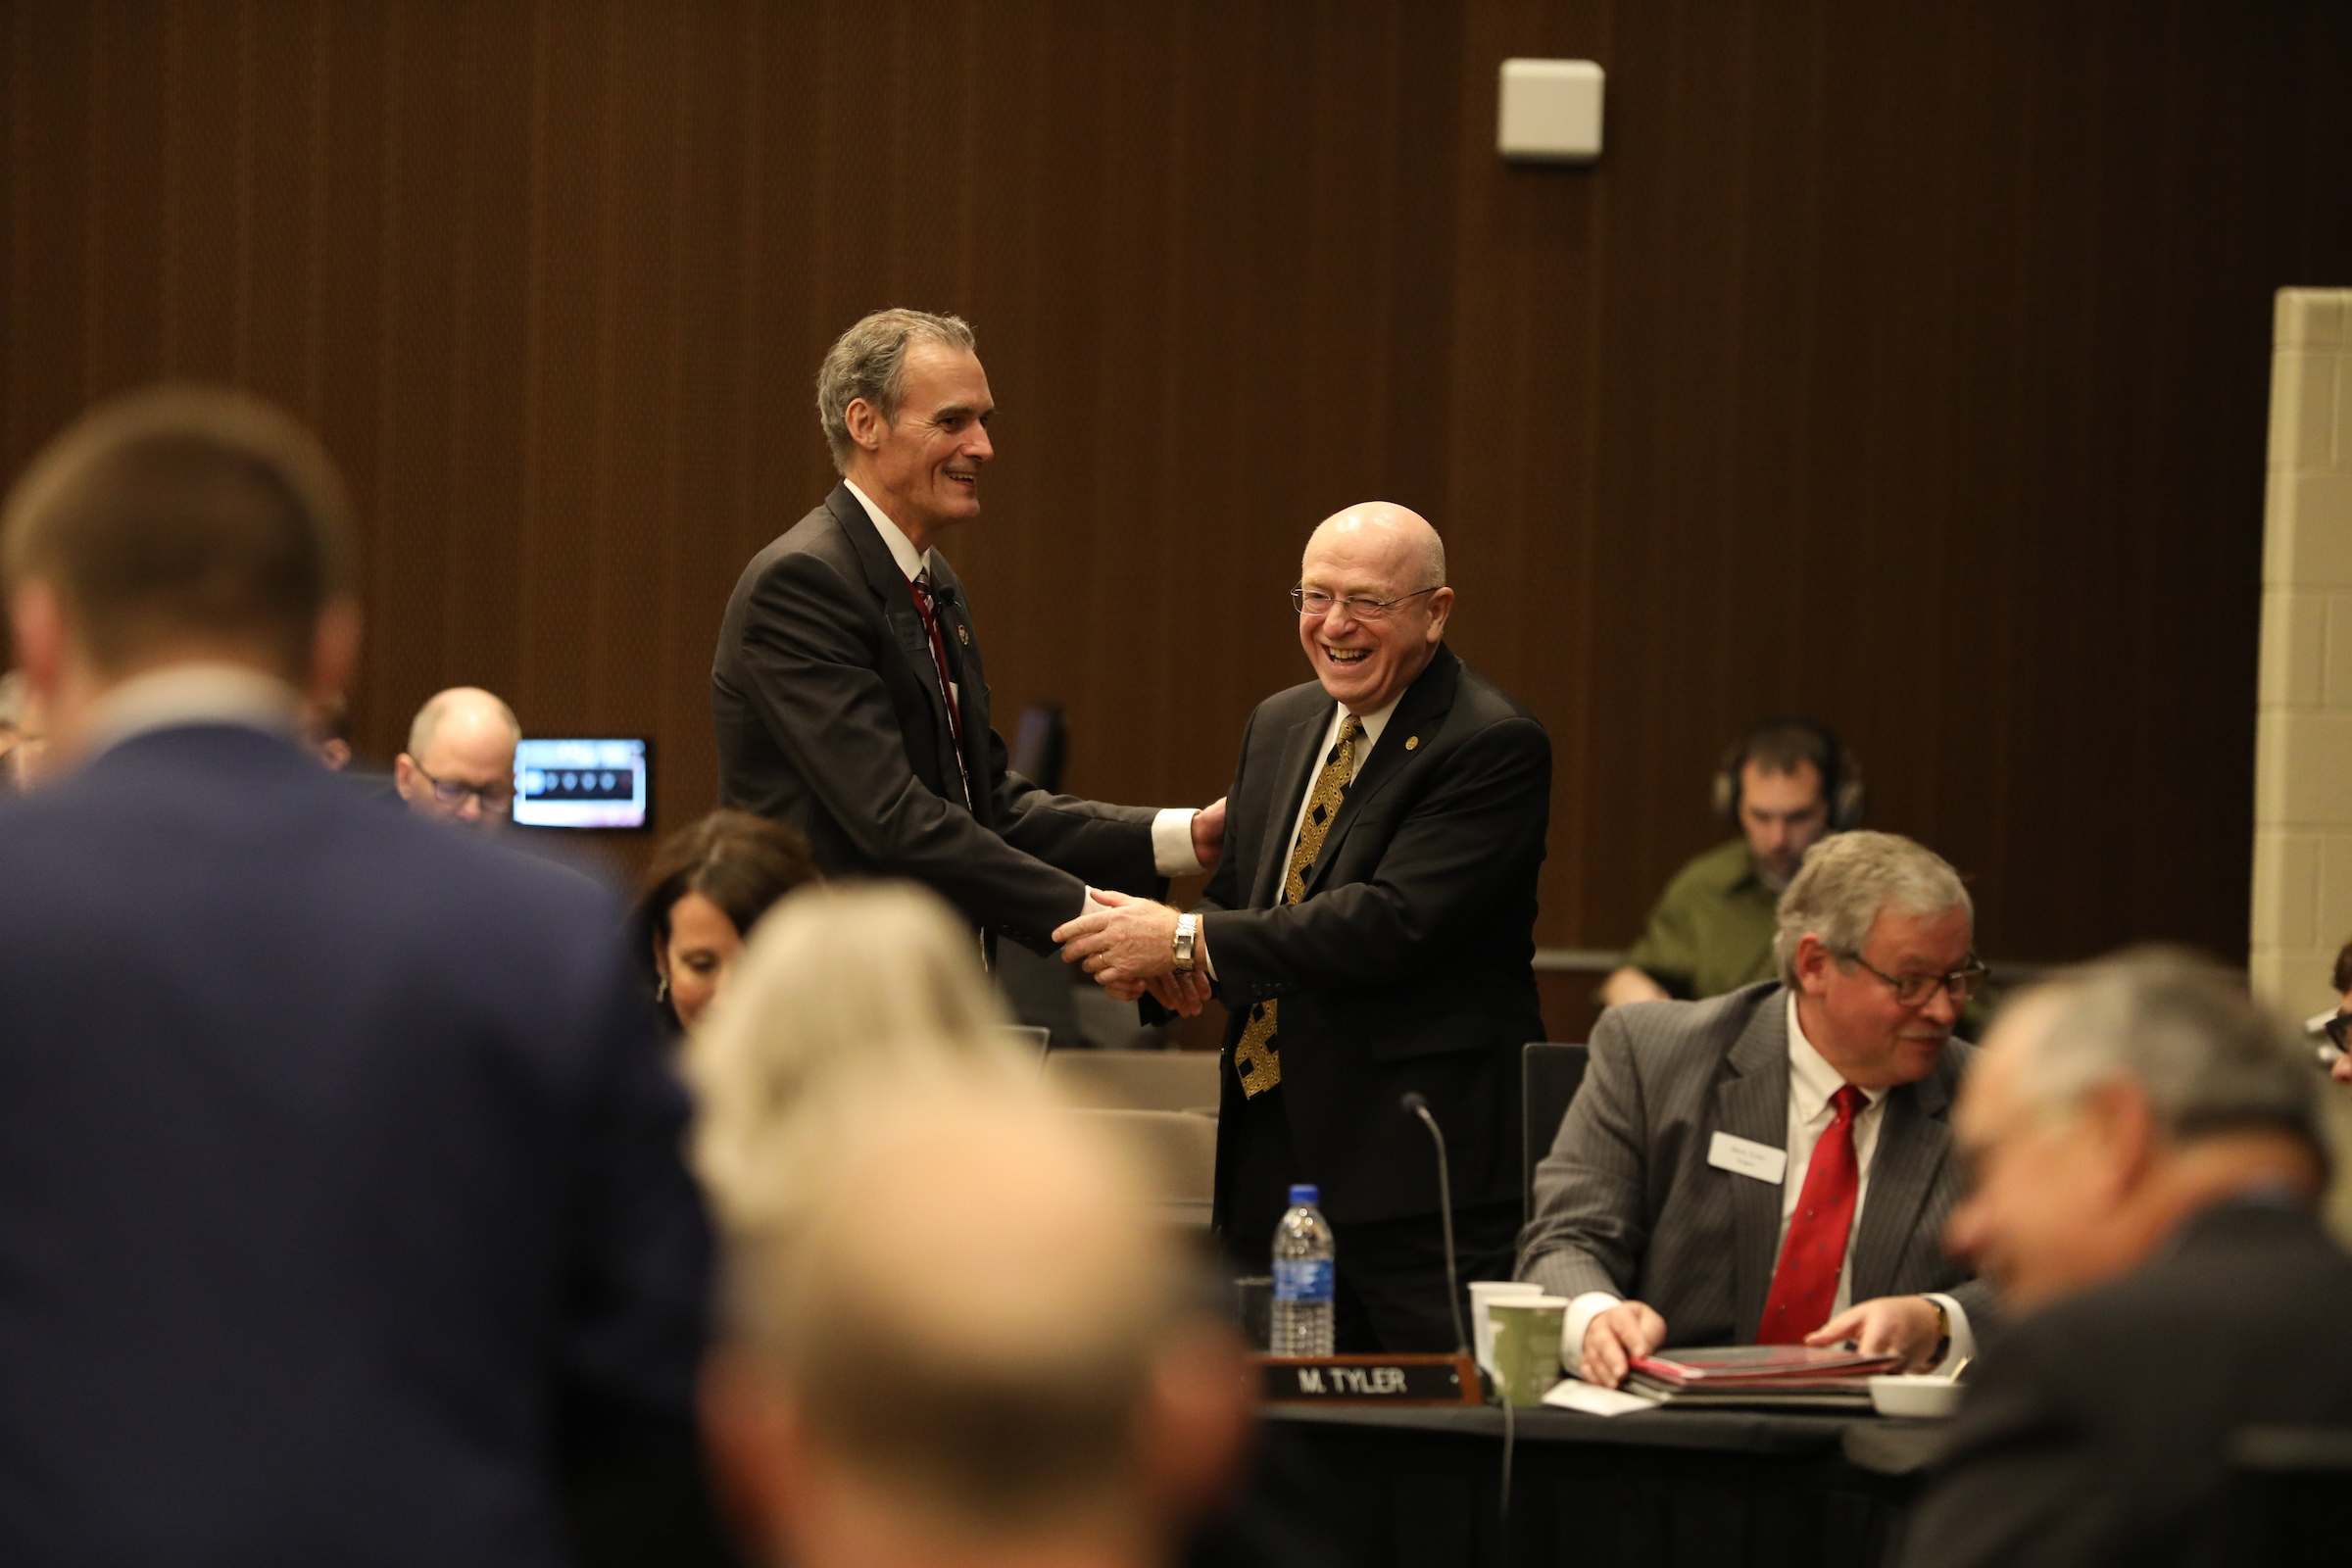 Photo of Chancellor Joe Gow and UW System President Ray Cross shaking hands during the first day of the UW System Board of Regents meeting hosted by UW-La Crosse (December 6, 2018)